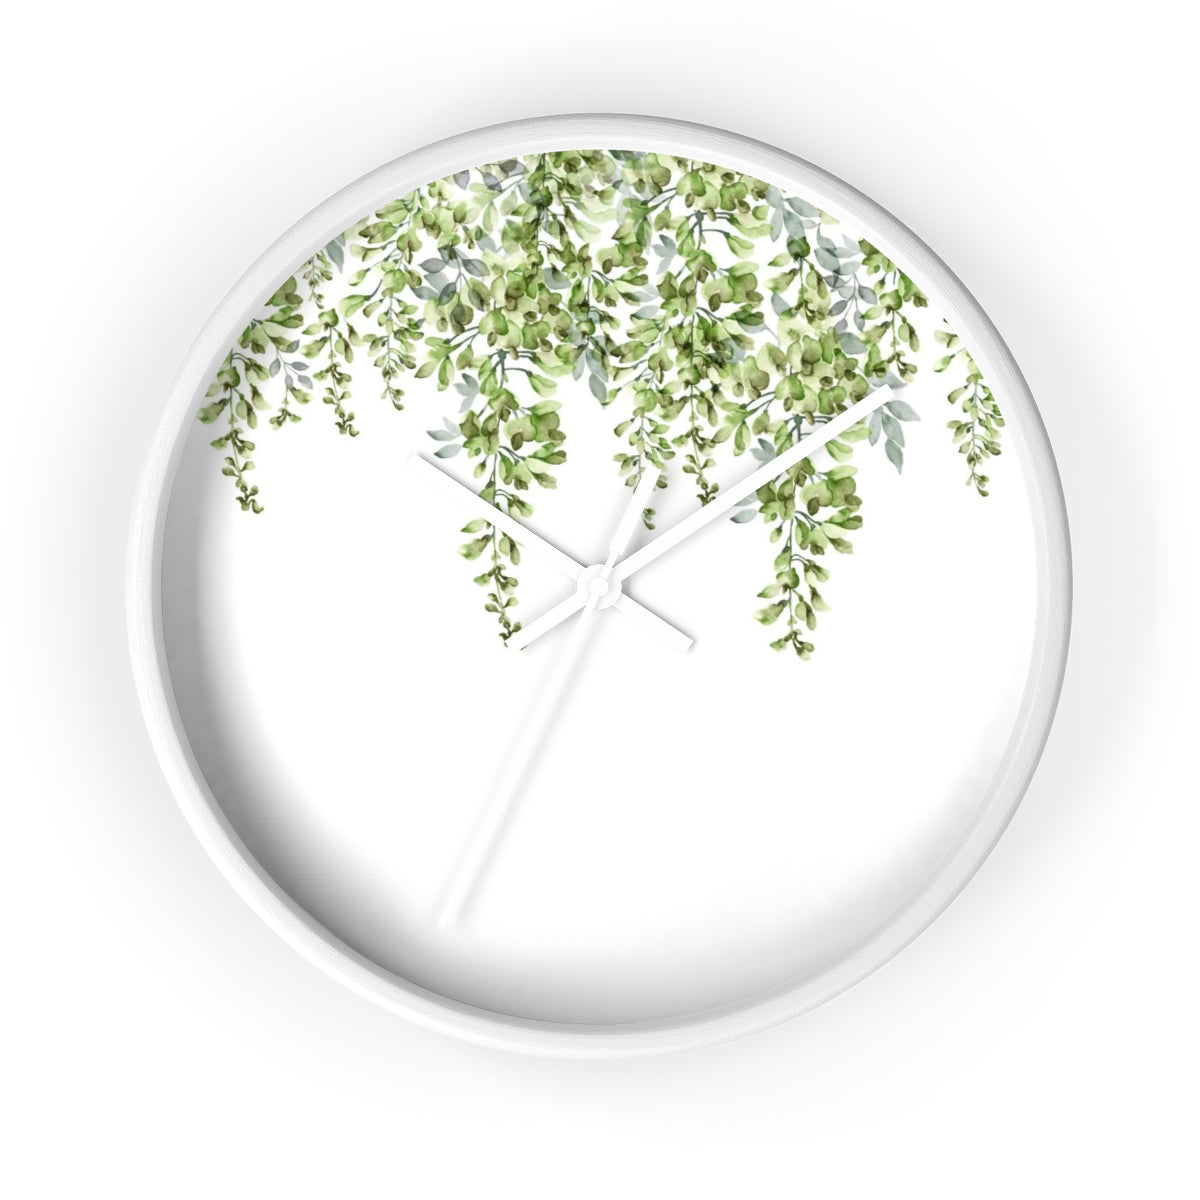 White round clock with green leaves - Liz Kapiloto Art & Design